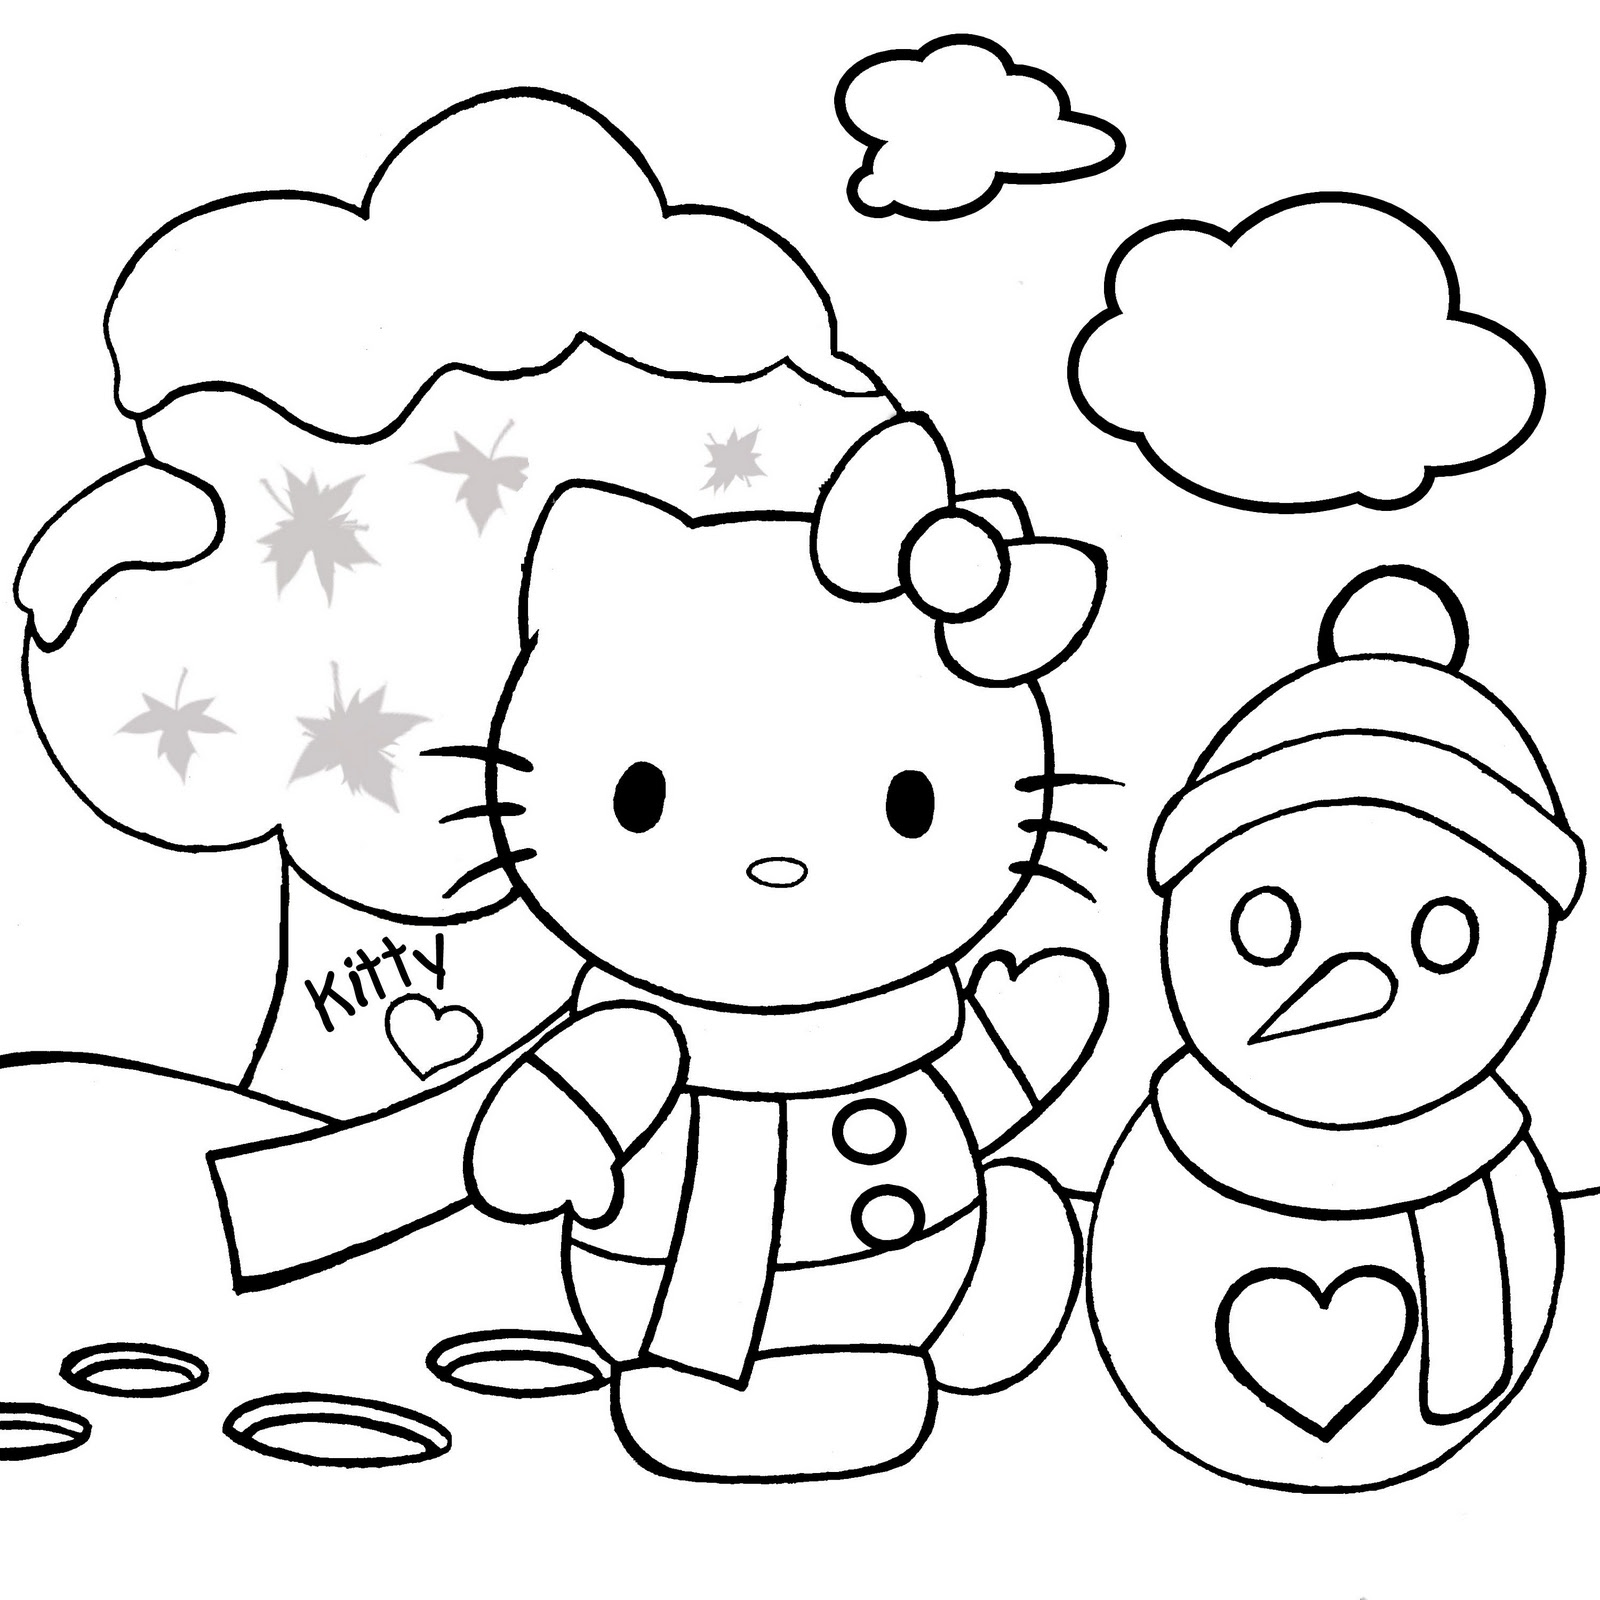 kitty hello coloring pages hello kitty coloring pages az coloring home kitty coloring pages hello